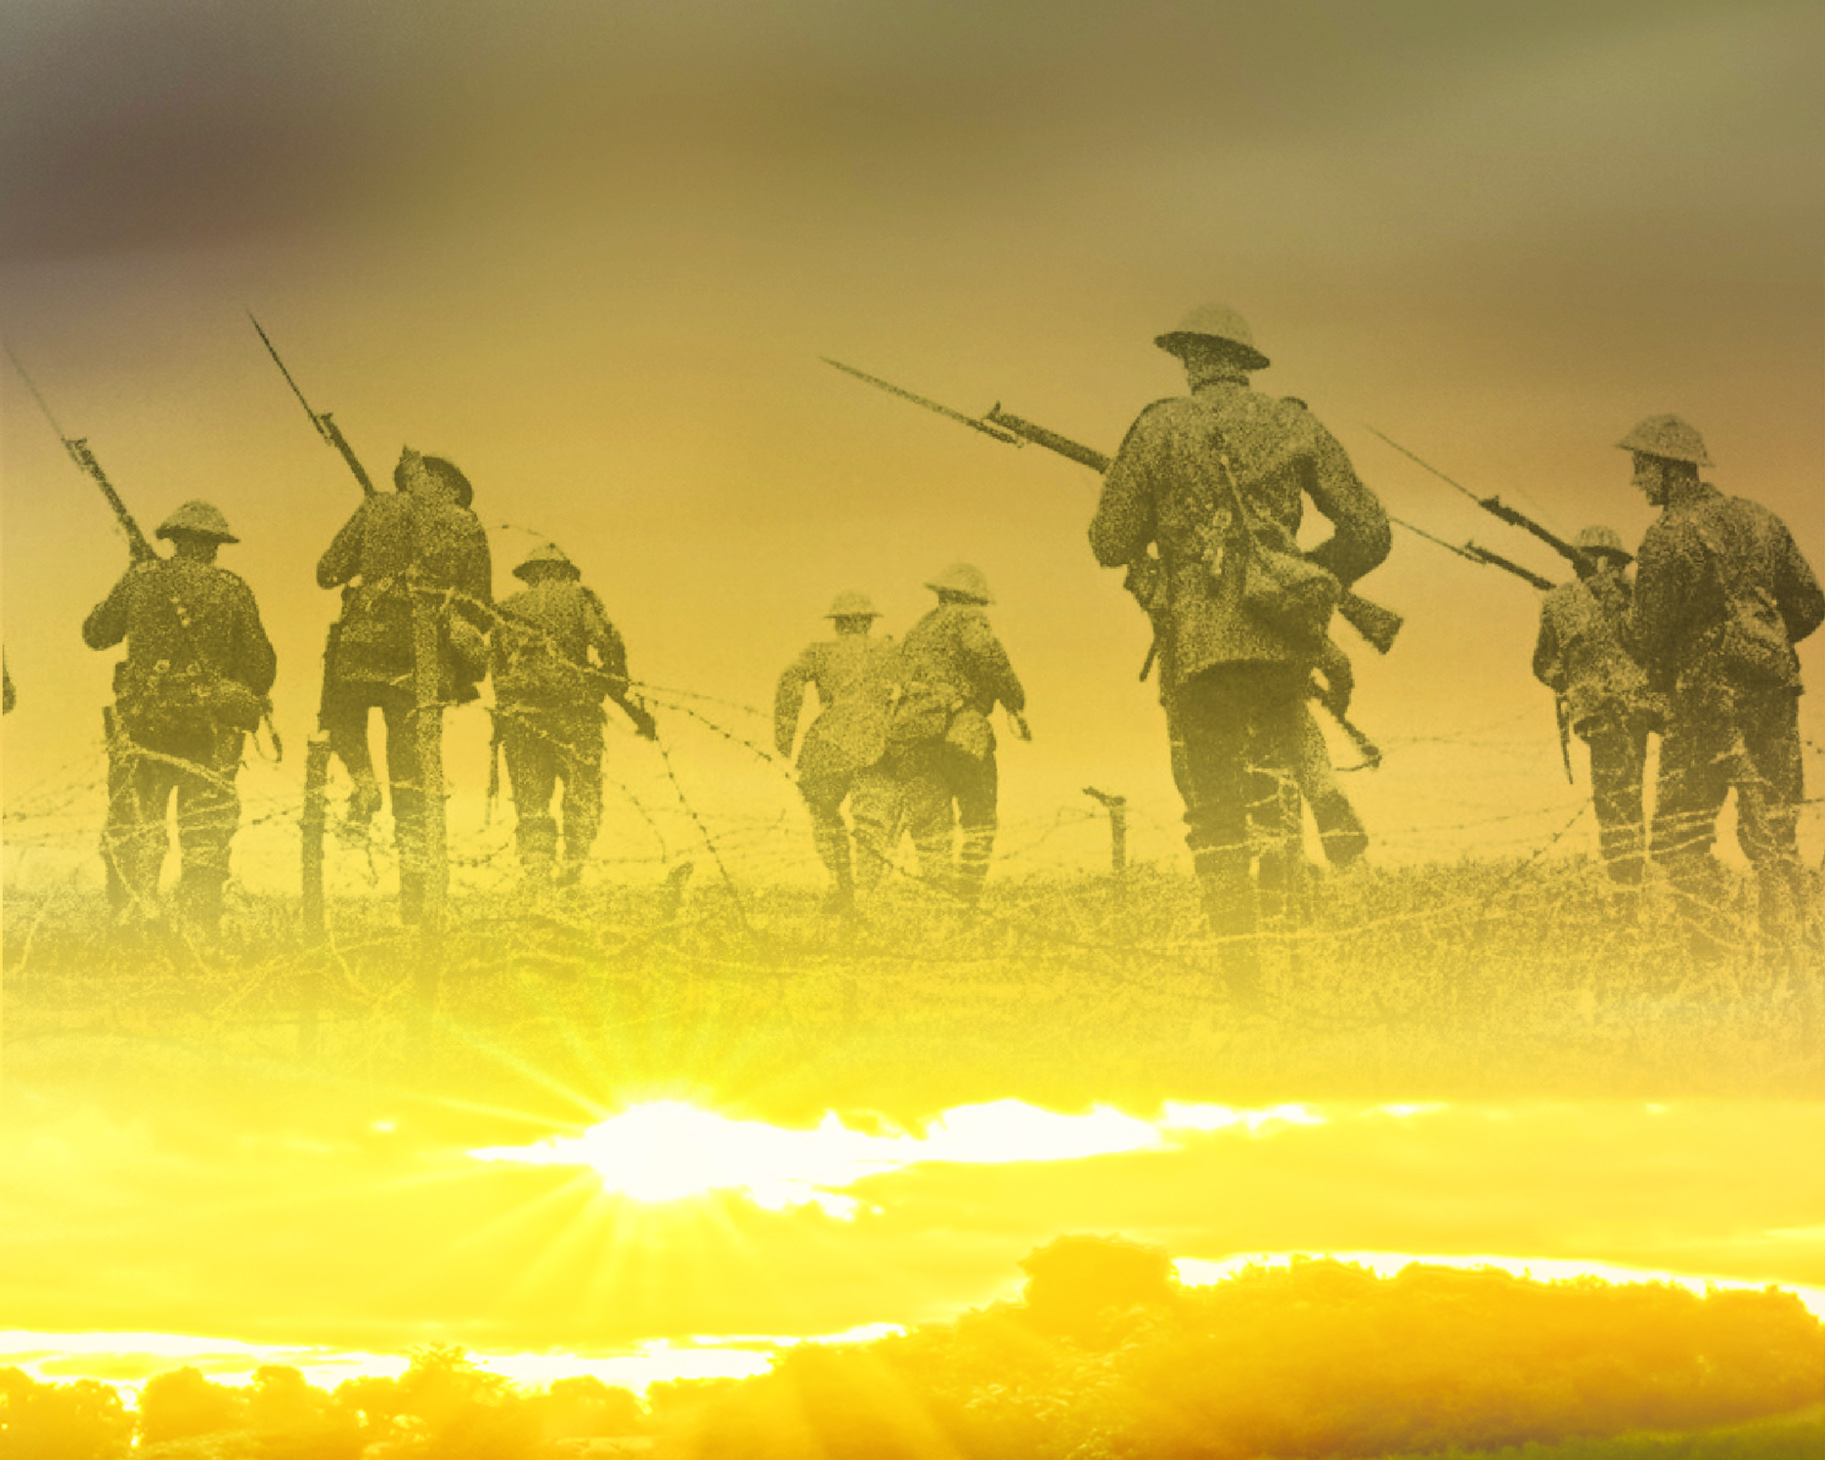 Sky-and-soldiers-only.jpg